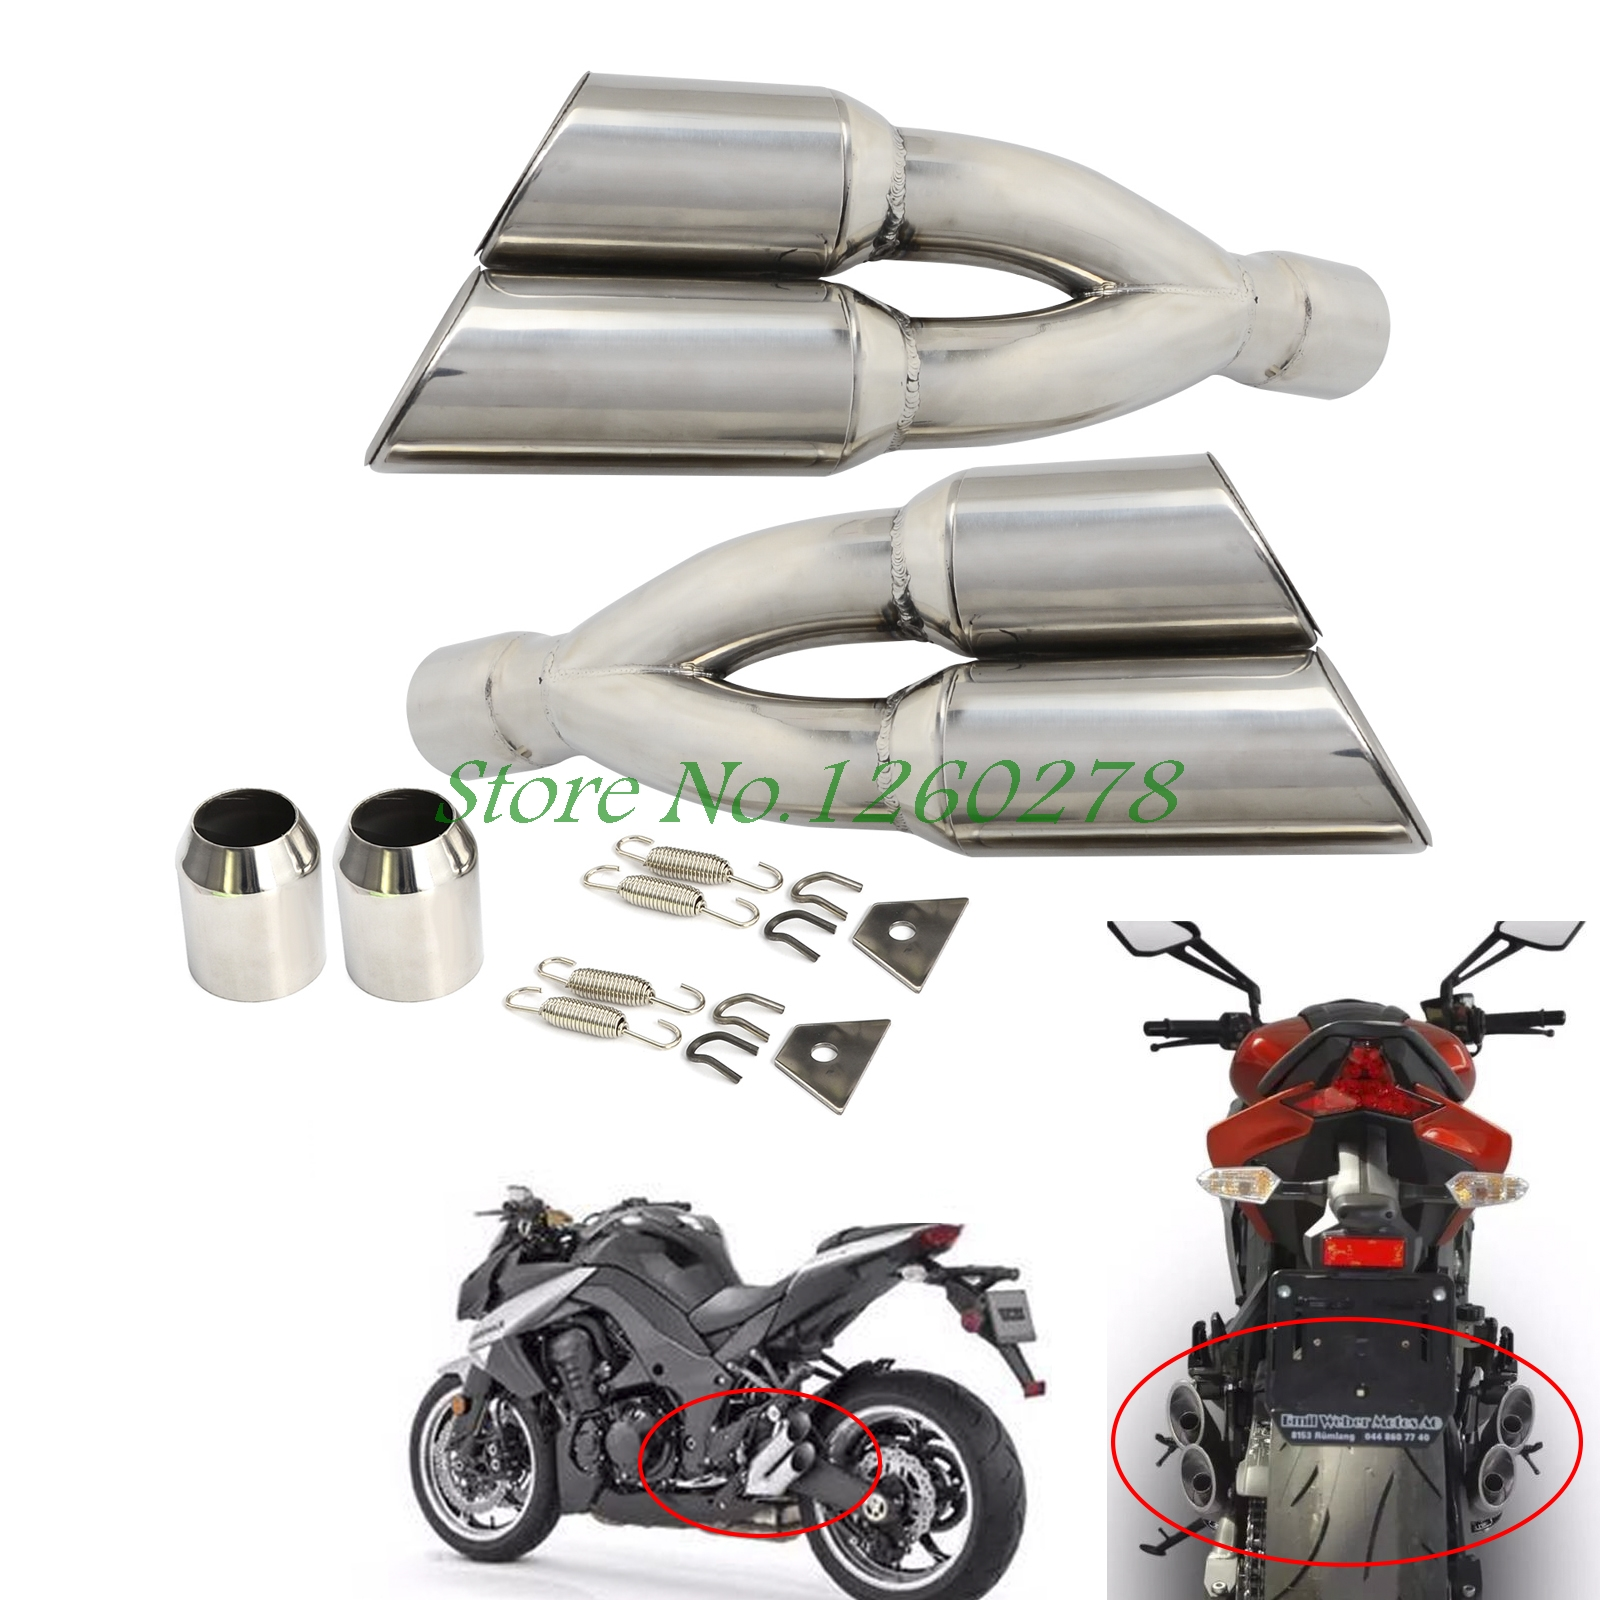 Universal Dual Exhaust Muffler Pipe Slip On For Motorcycle Motocross Supermoto Street Bike Scooter ATV Quad Dirt Bike Off Road high quality cnc front brake master cylinder pump lever for dirt pit bike atv quad scooter enduro supermoto off road motorcycle